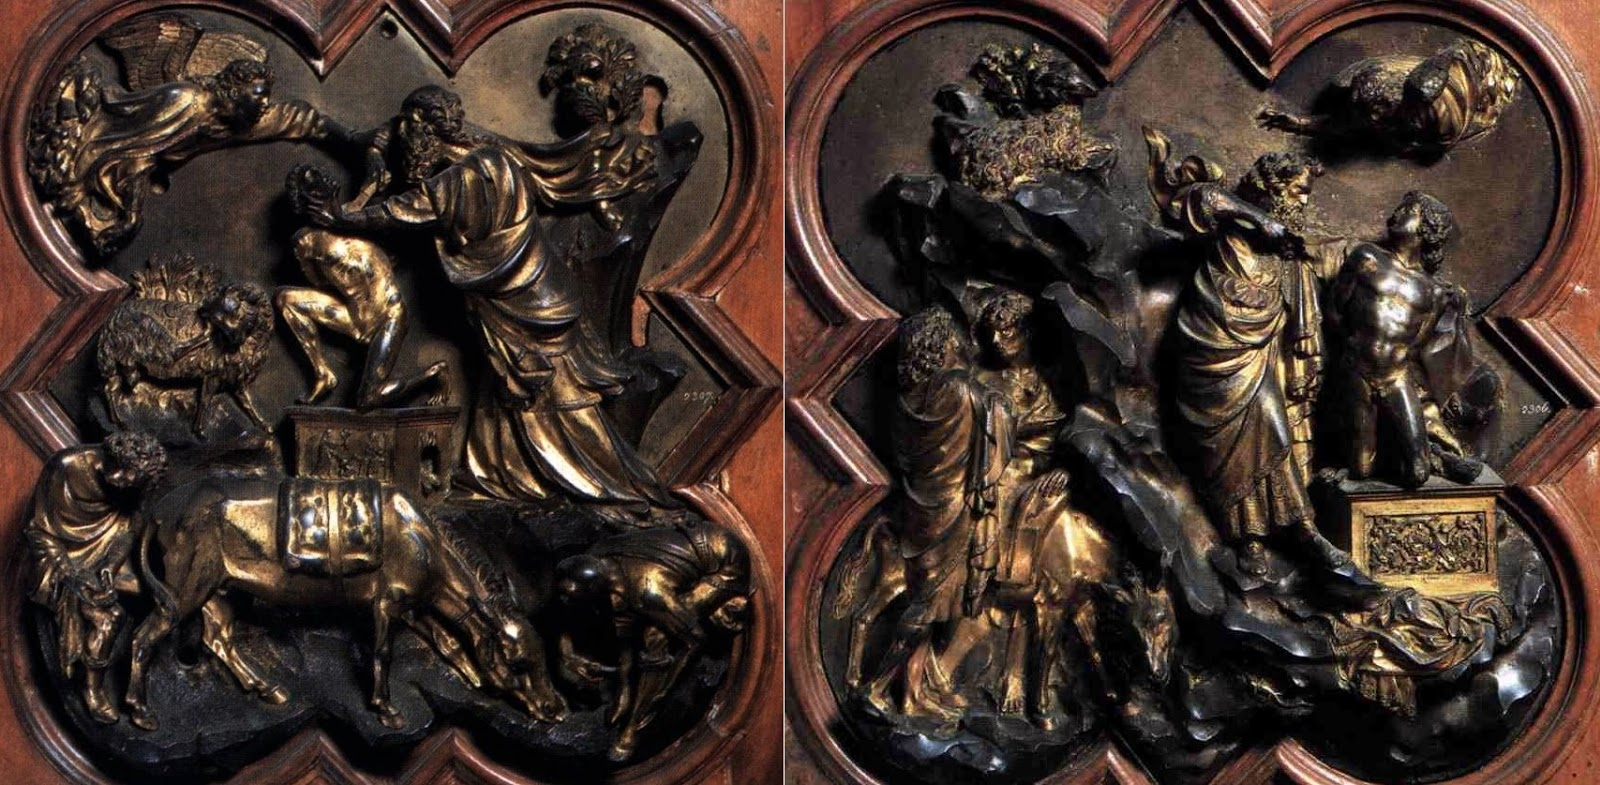 Sacrifice of Isaac reliefs made in 1401, by Lorenzo Ghiberti and Filippo Brunelleschi for Florence Baptistery